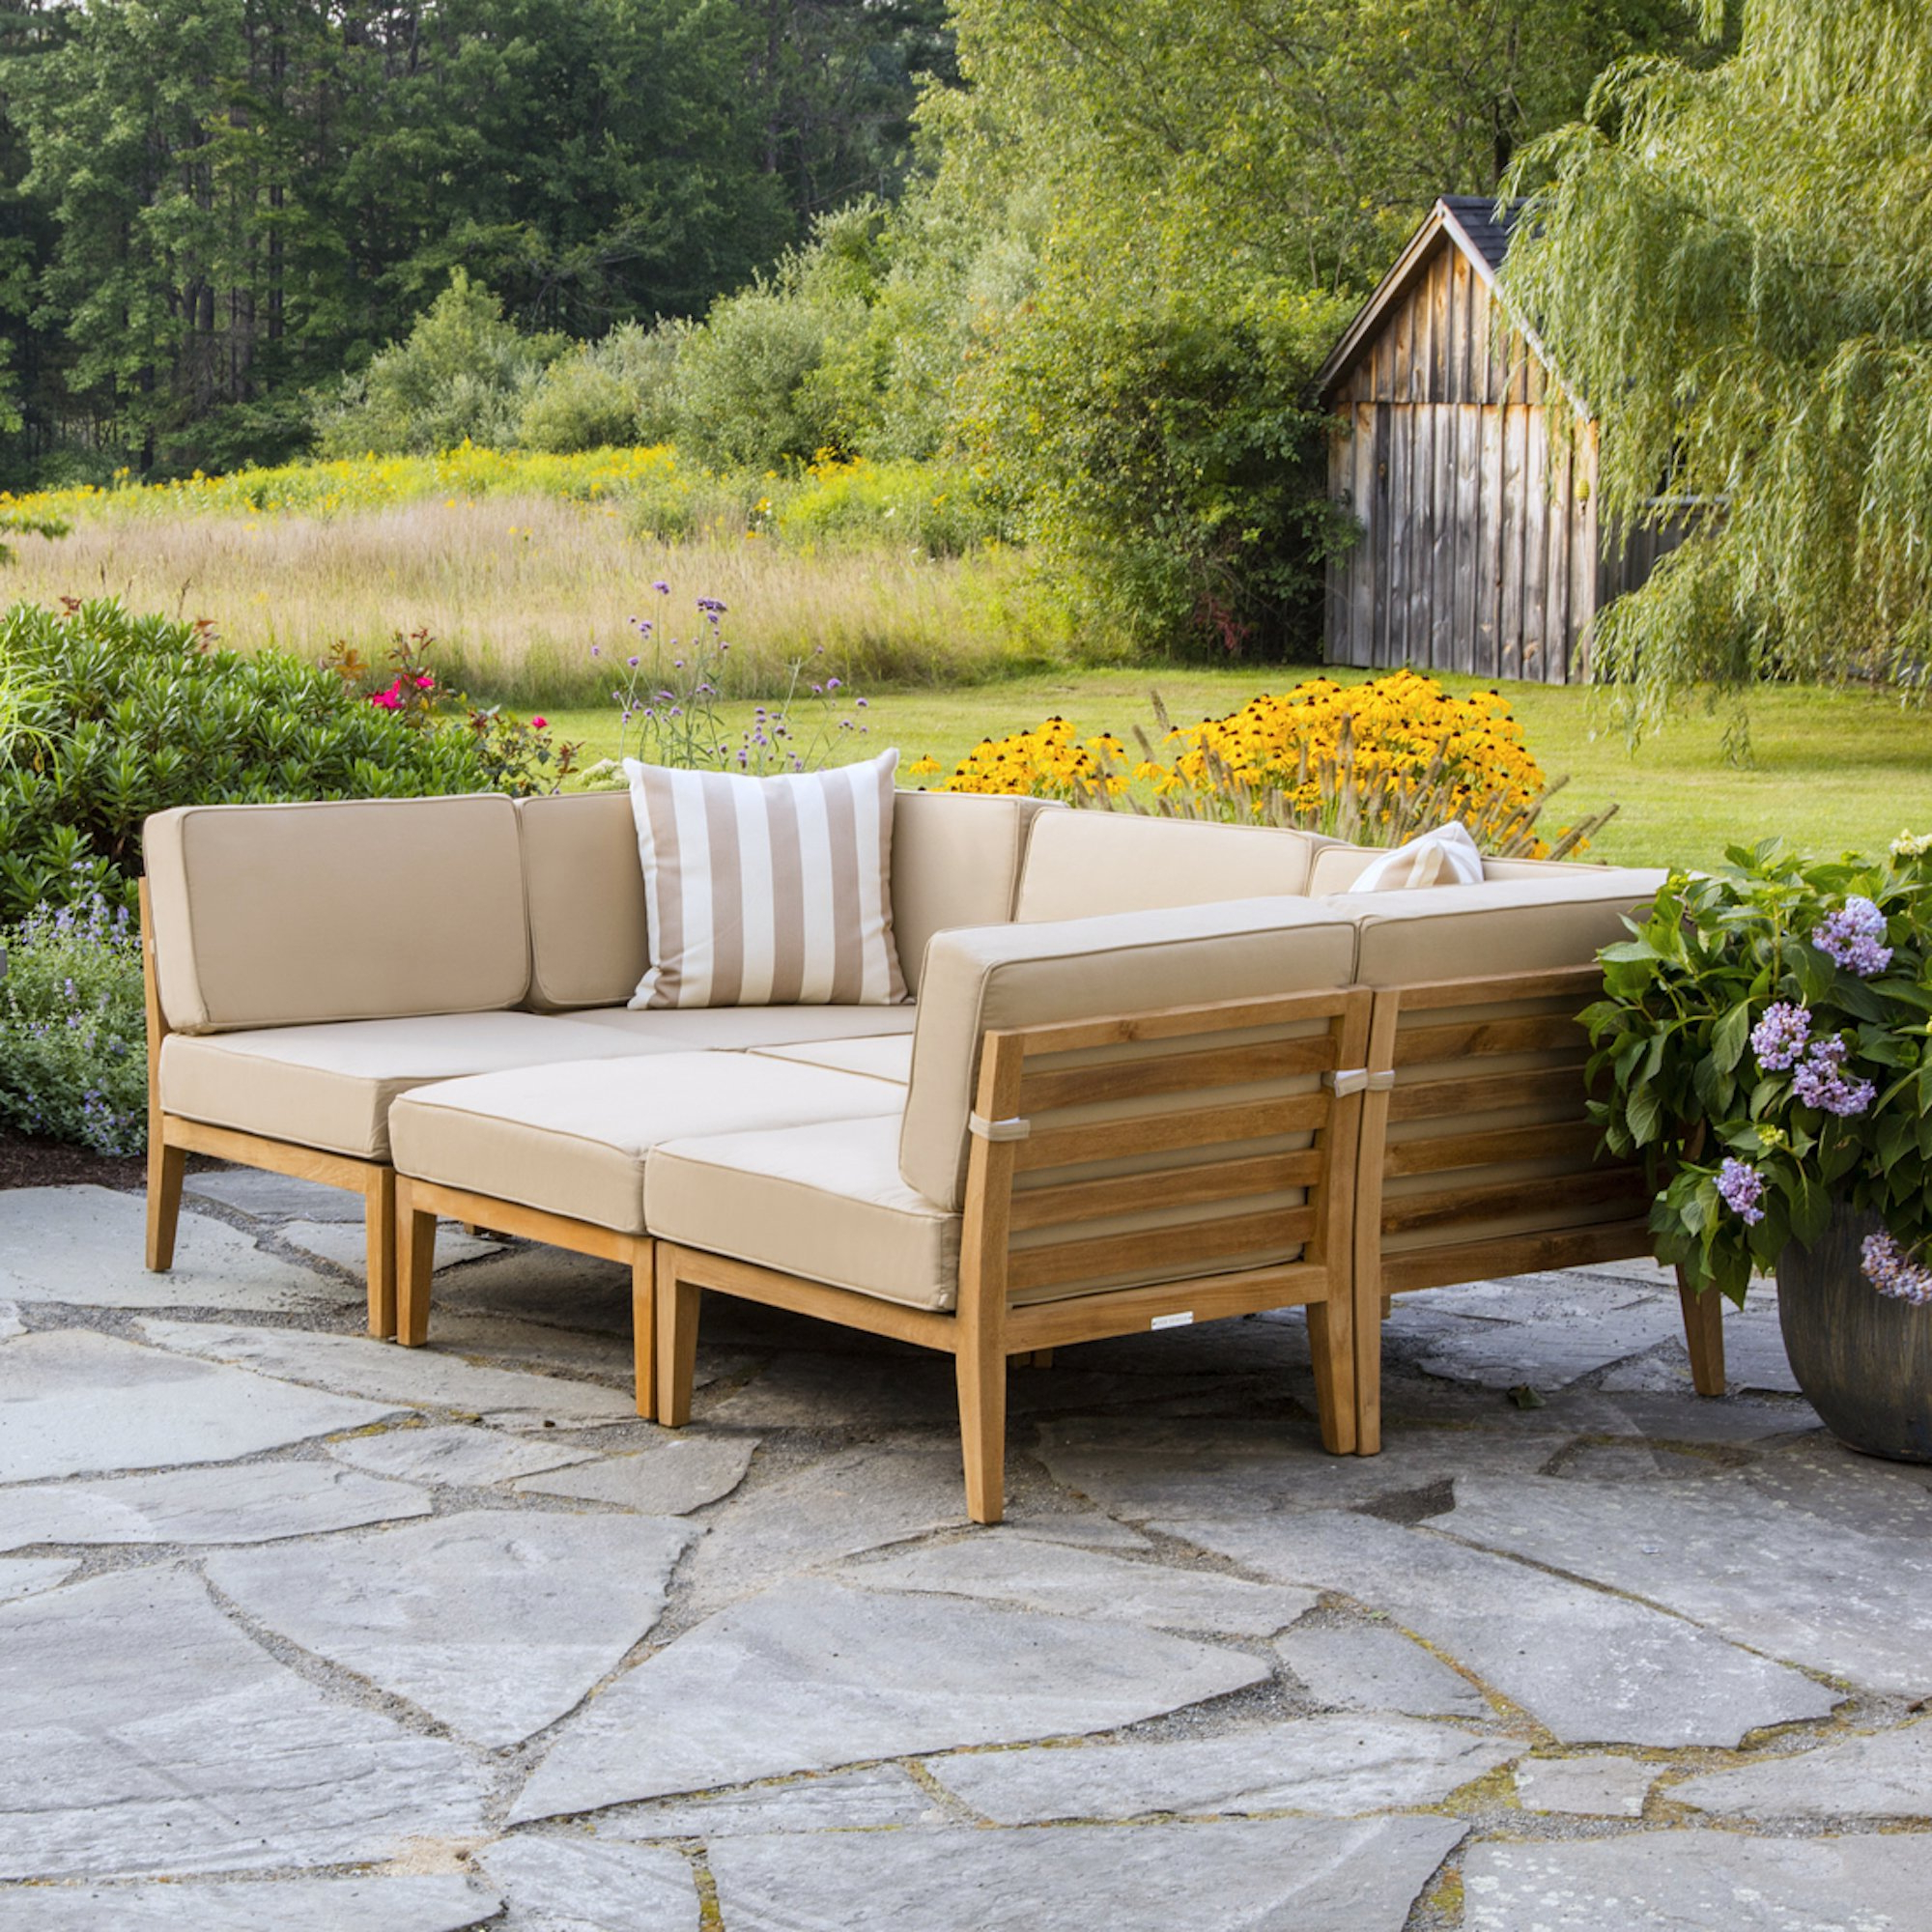 Newest Clary Teak Lounge Patio Daybeds With Cushion Intended For Bali Teak Patio Sectional With Cushions (View 10 of 20)